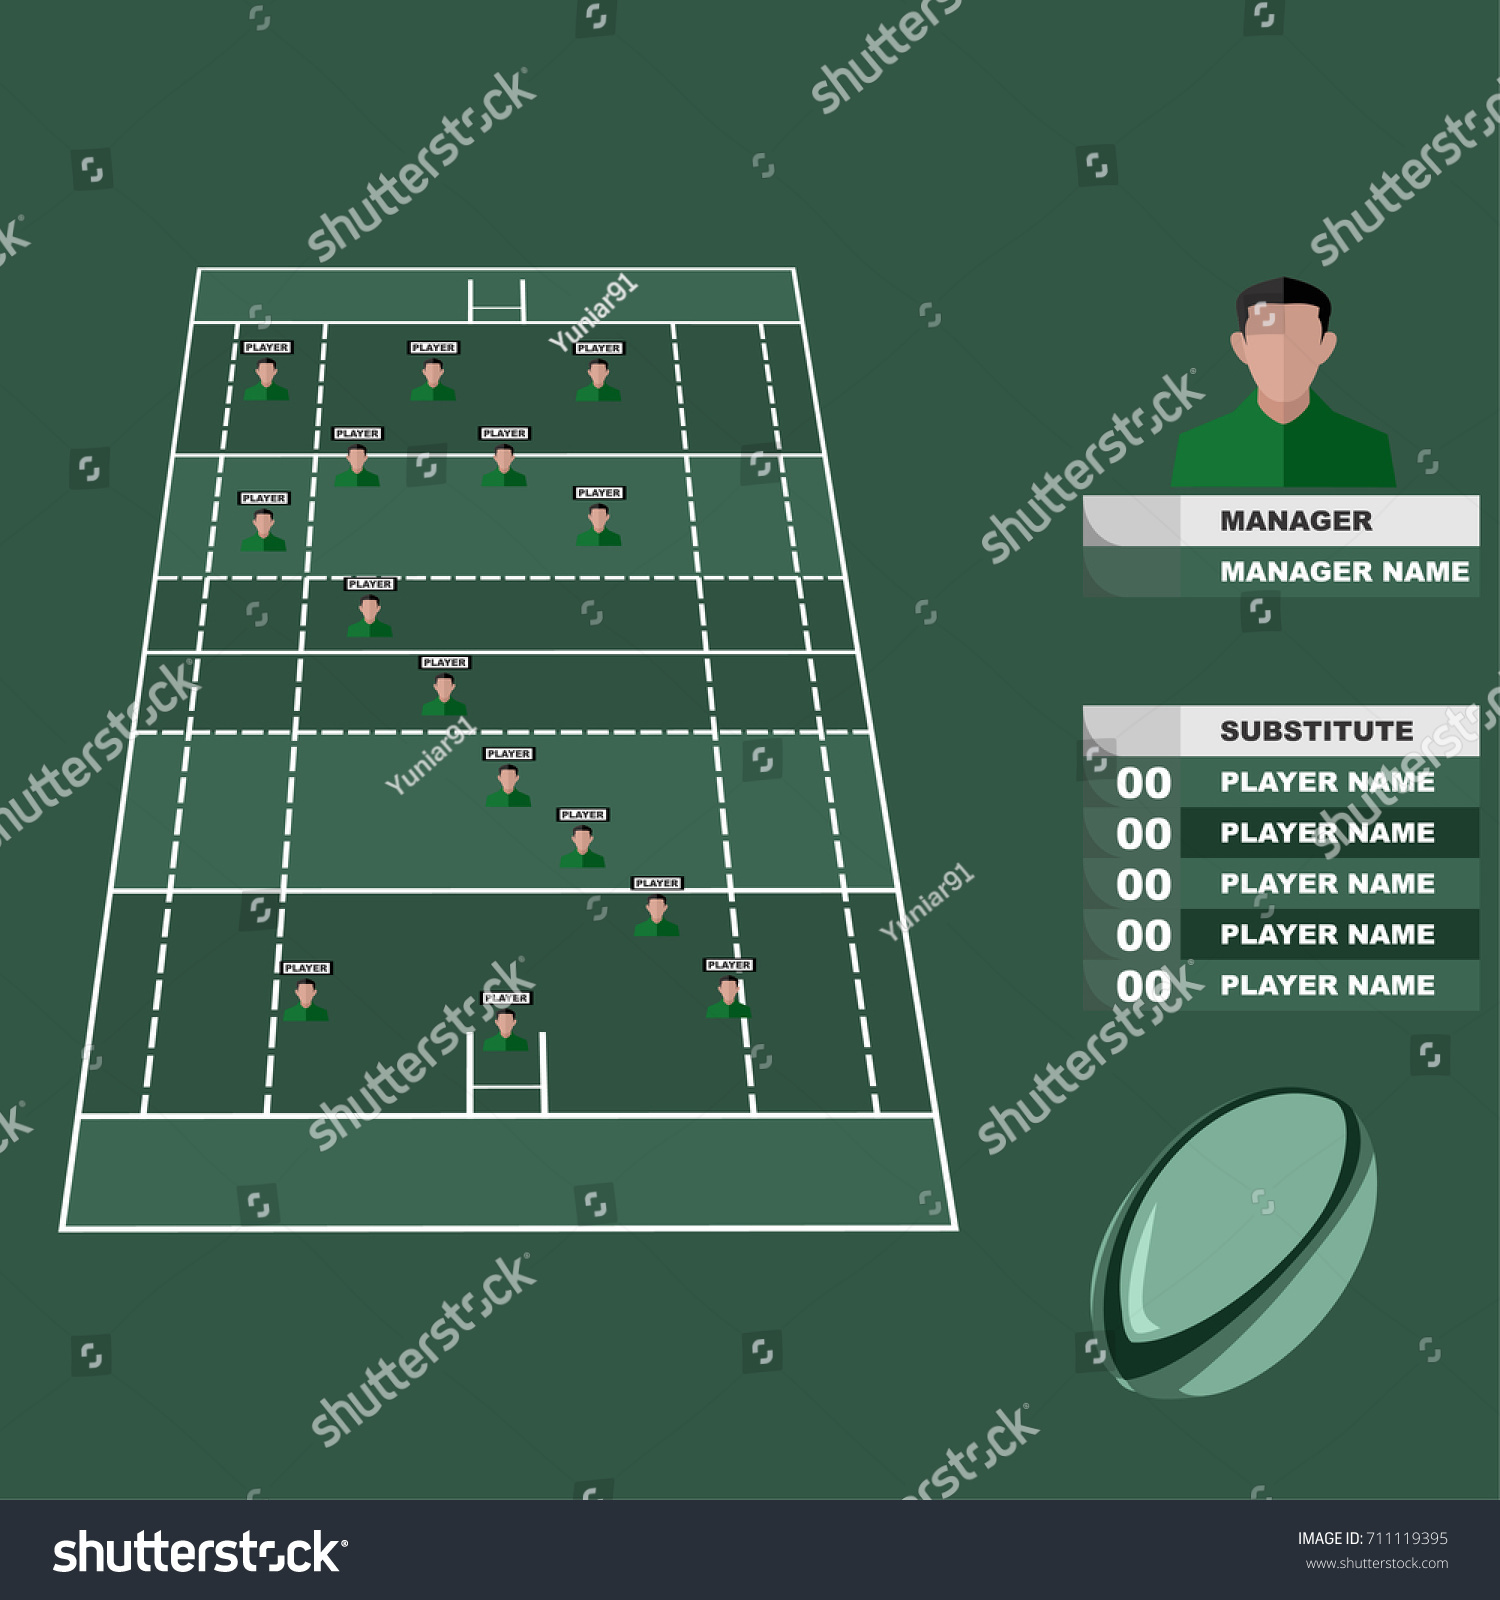 Rugby Formation Board Vector Illustration Stock Vector Royalty Free 711119395